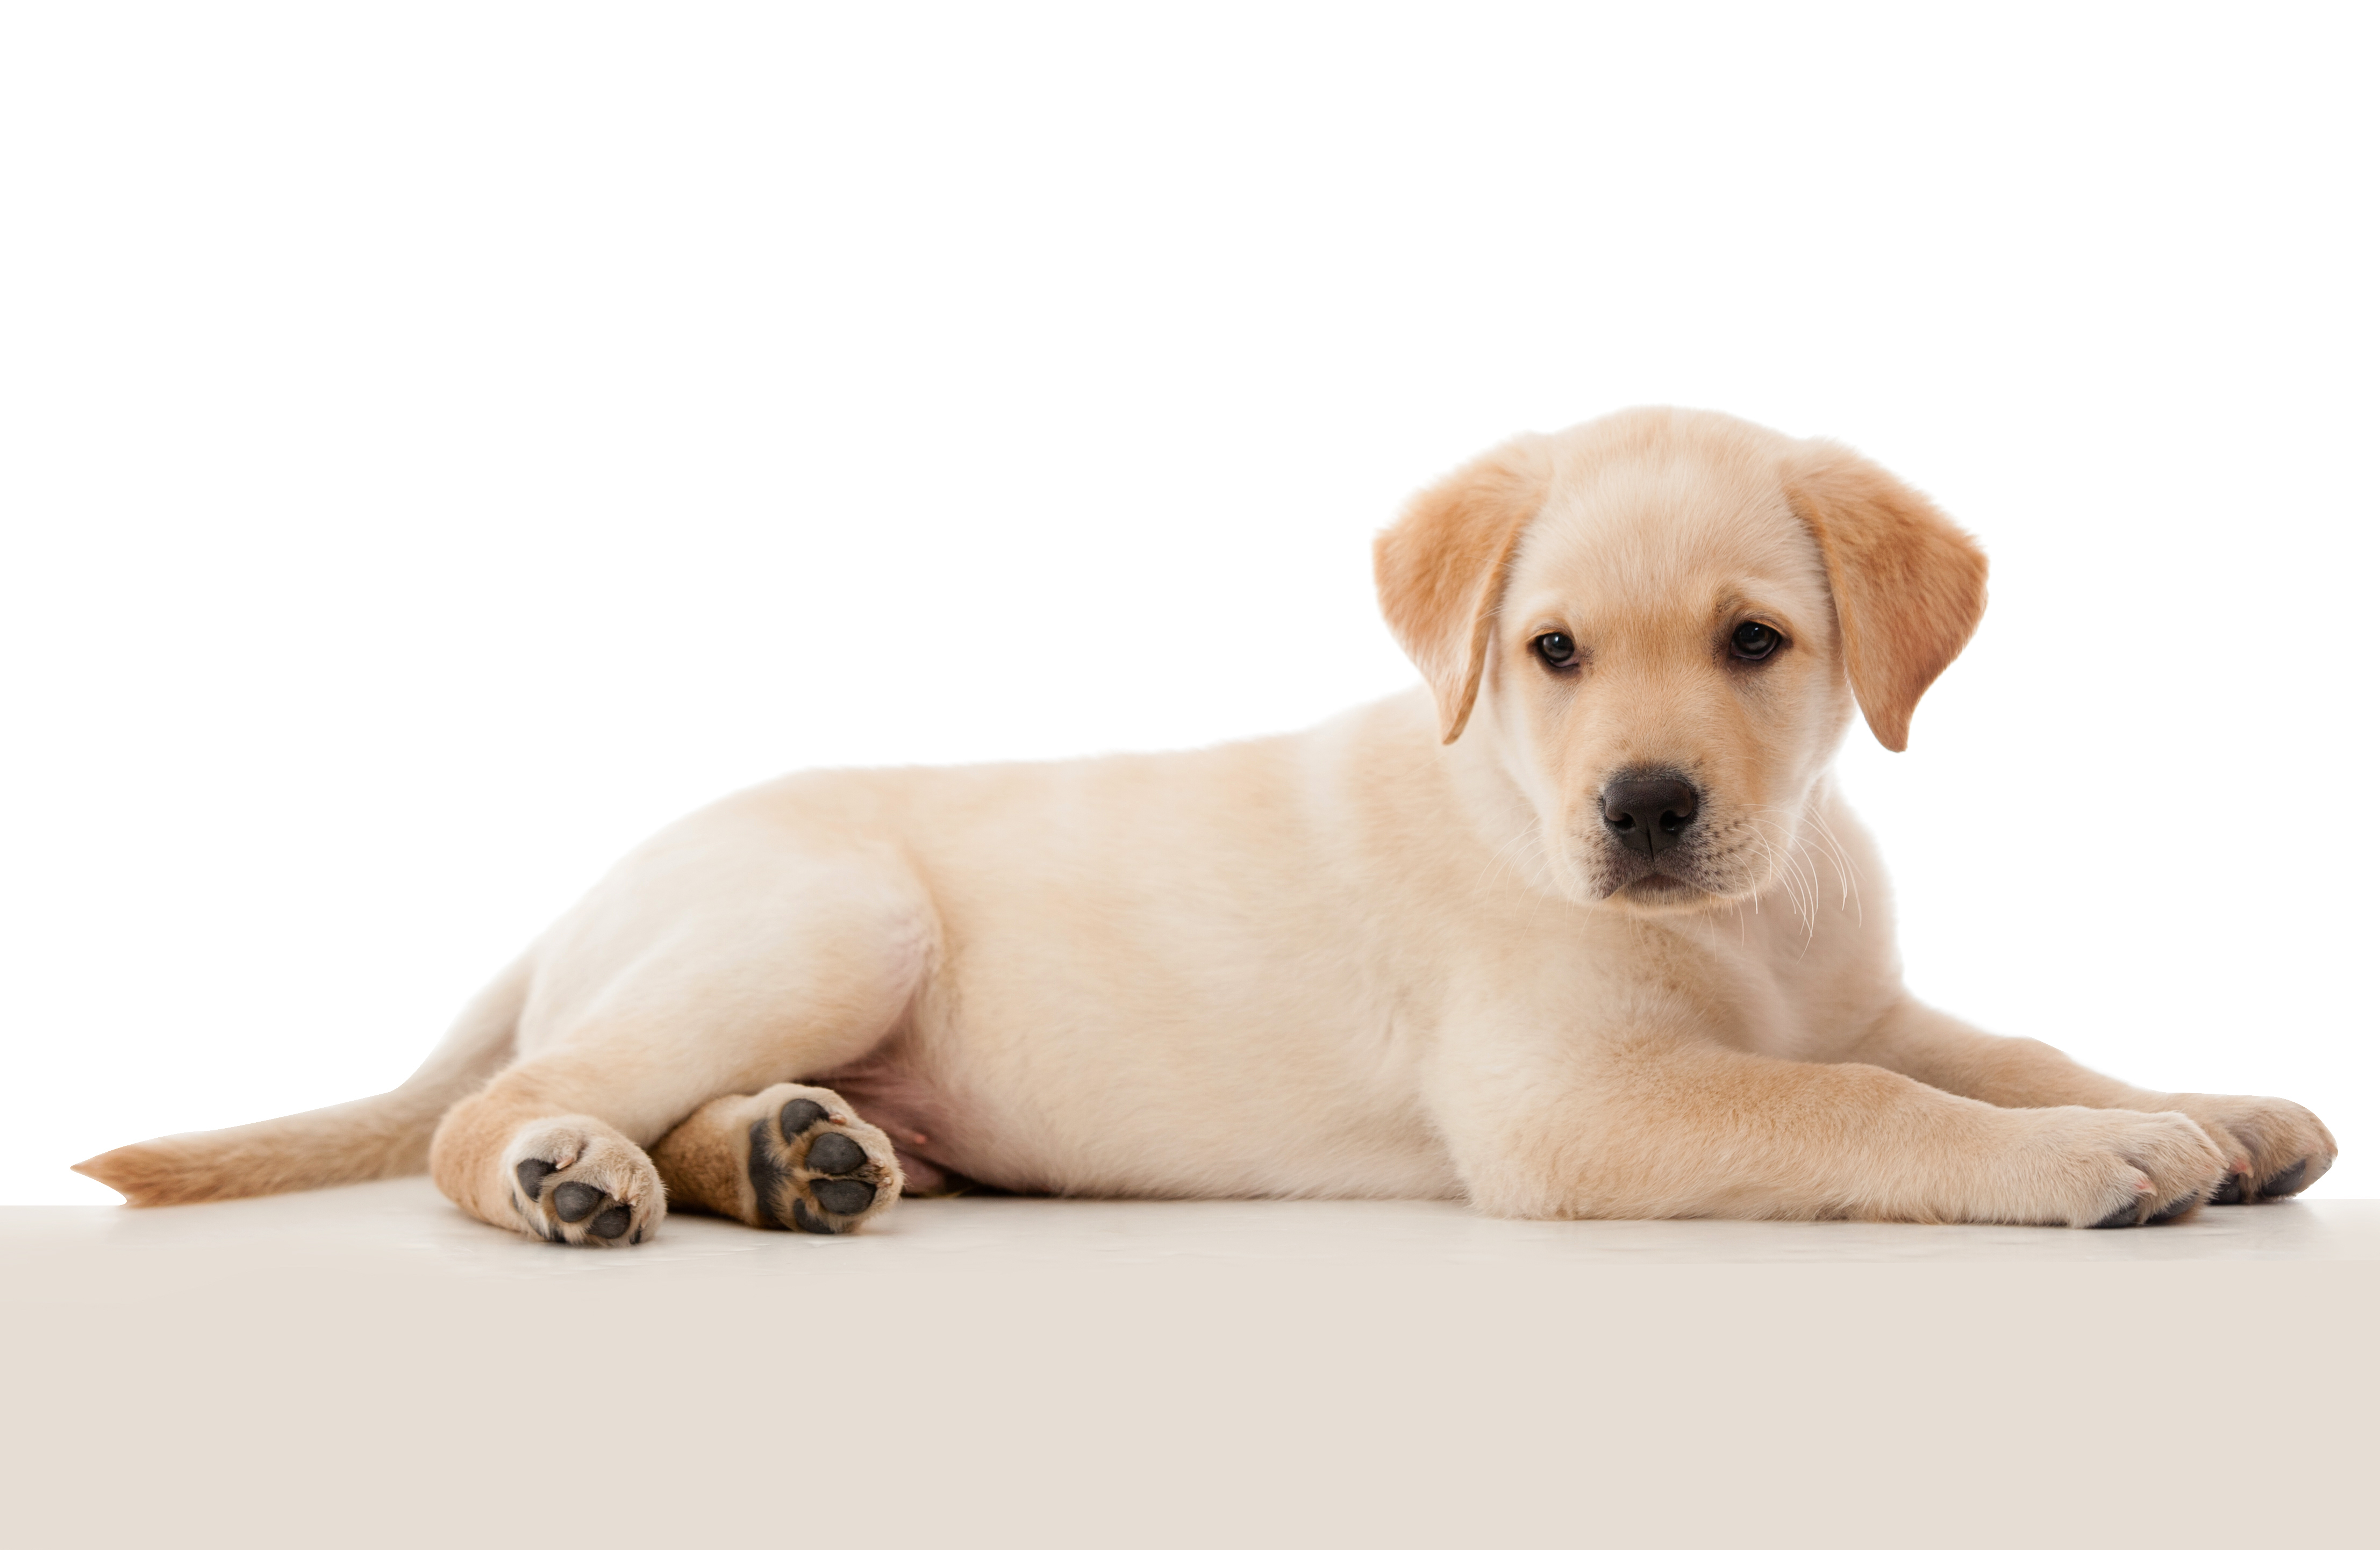 Beautiful puppy laying down - isolated over a white background